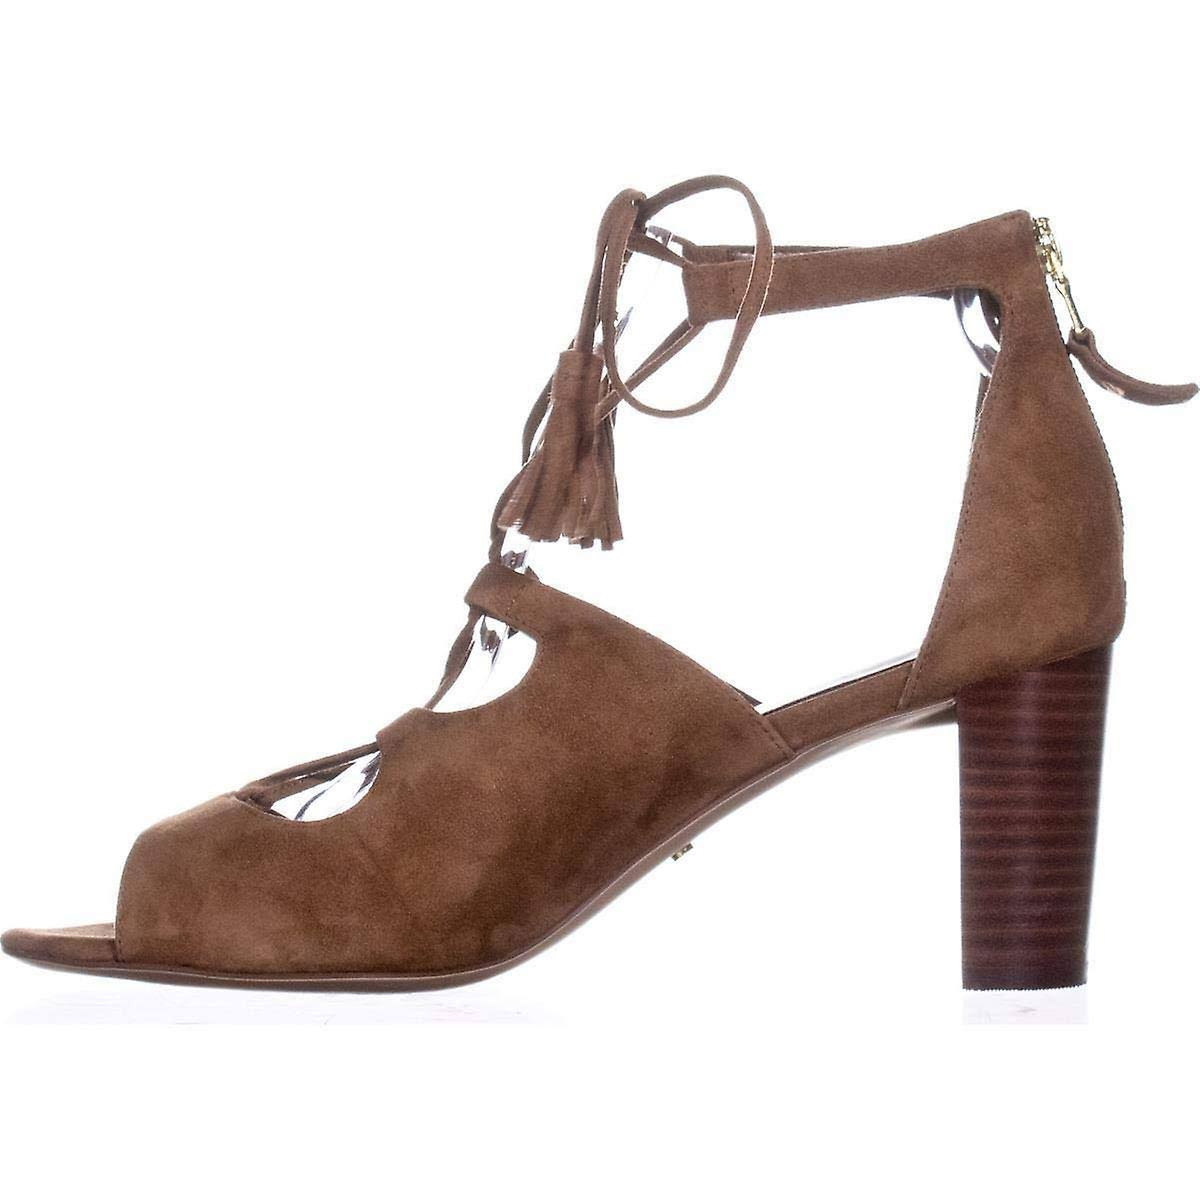 Lauren by Ralph Lauren Womens Hasel Leather Open Toe Casual Strappy Sandals Brown 9.5 US / 7.5 UK  zsgyBd